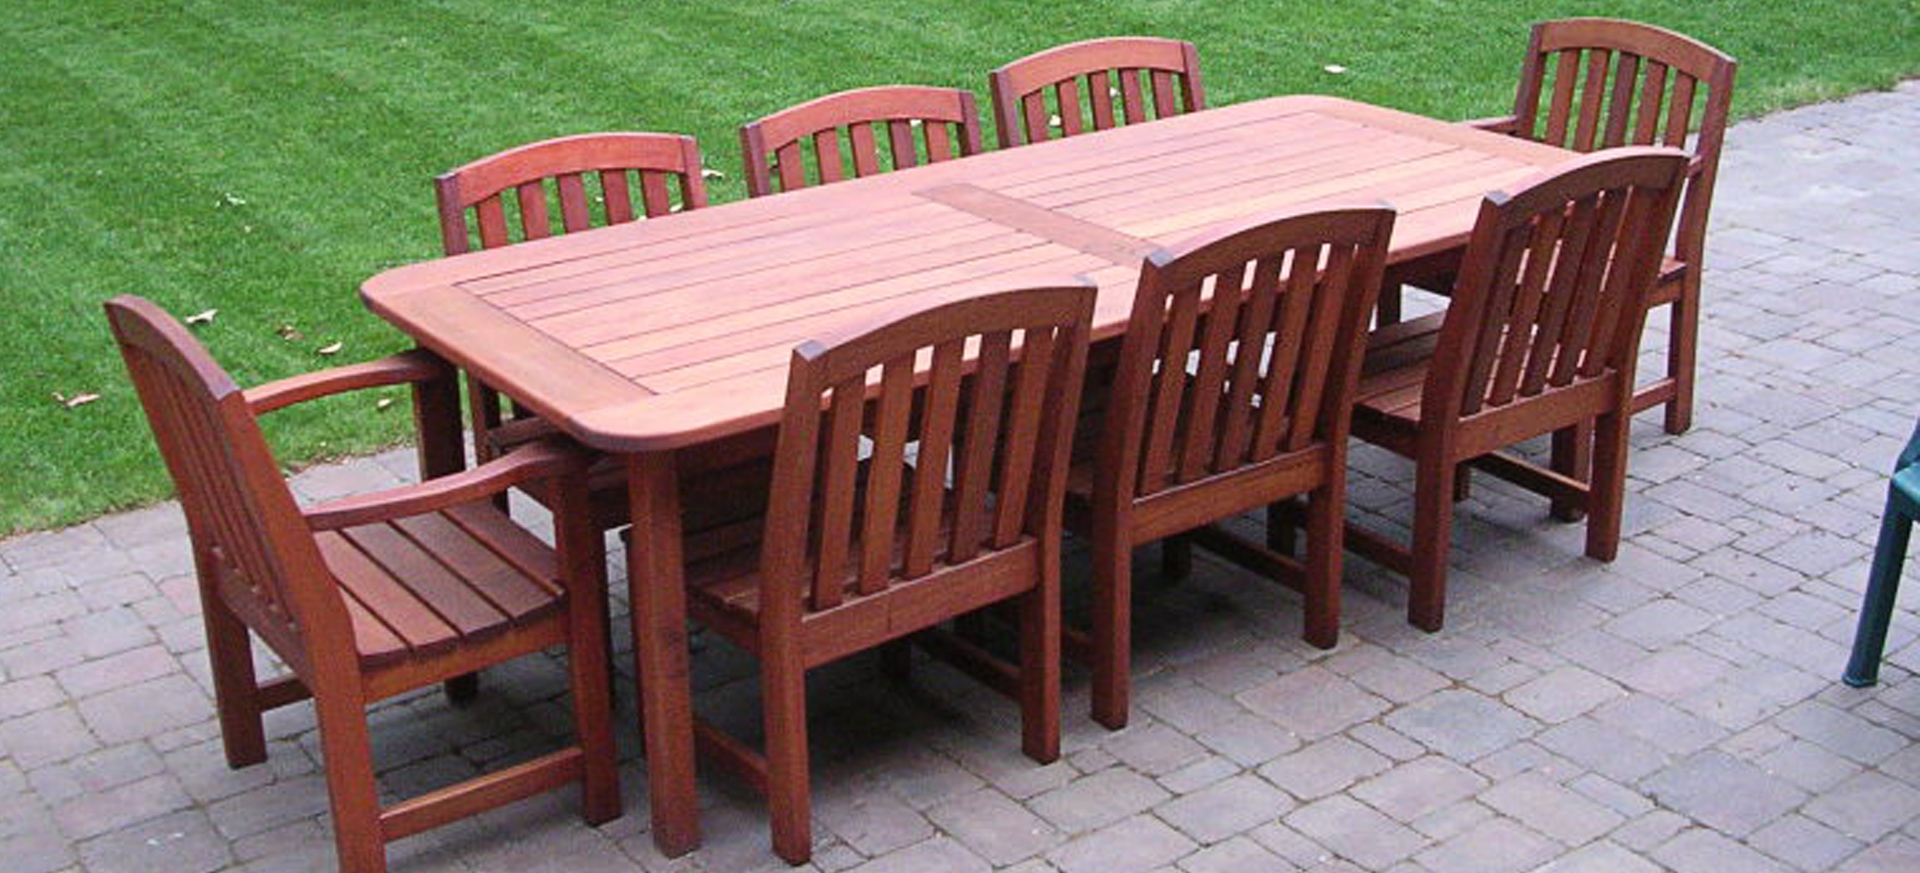 Patio Furniture Portsmouth Nh.Home Handcrafted Furniture Chairman Of The Board